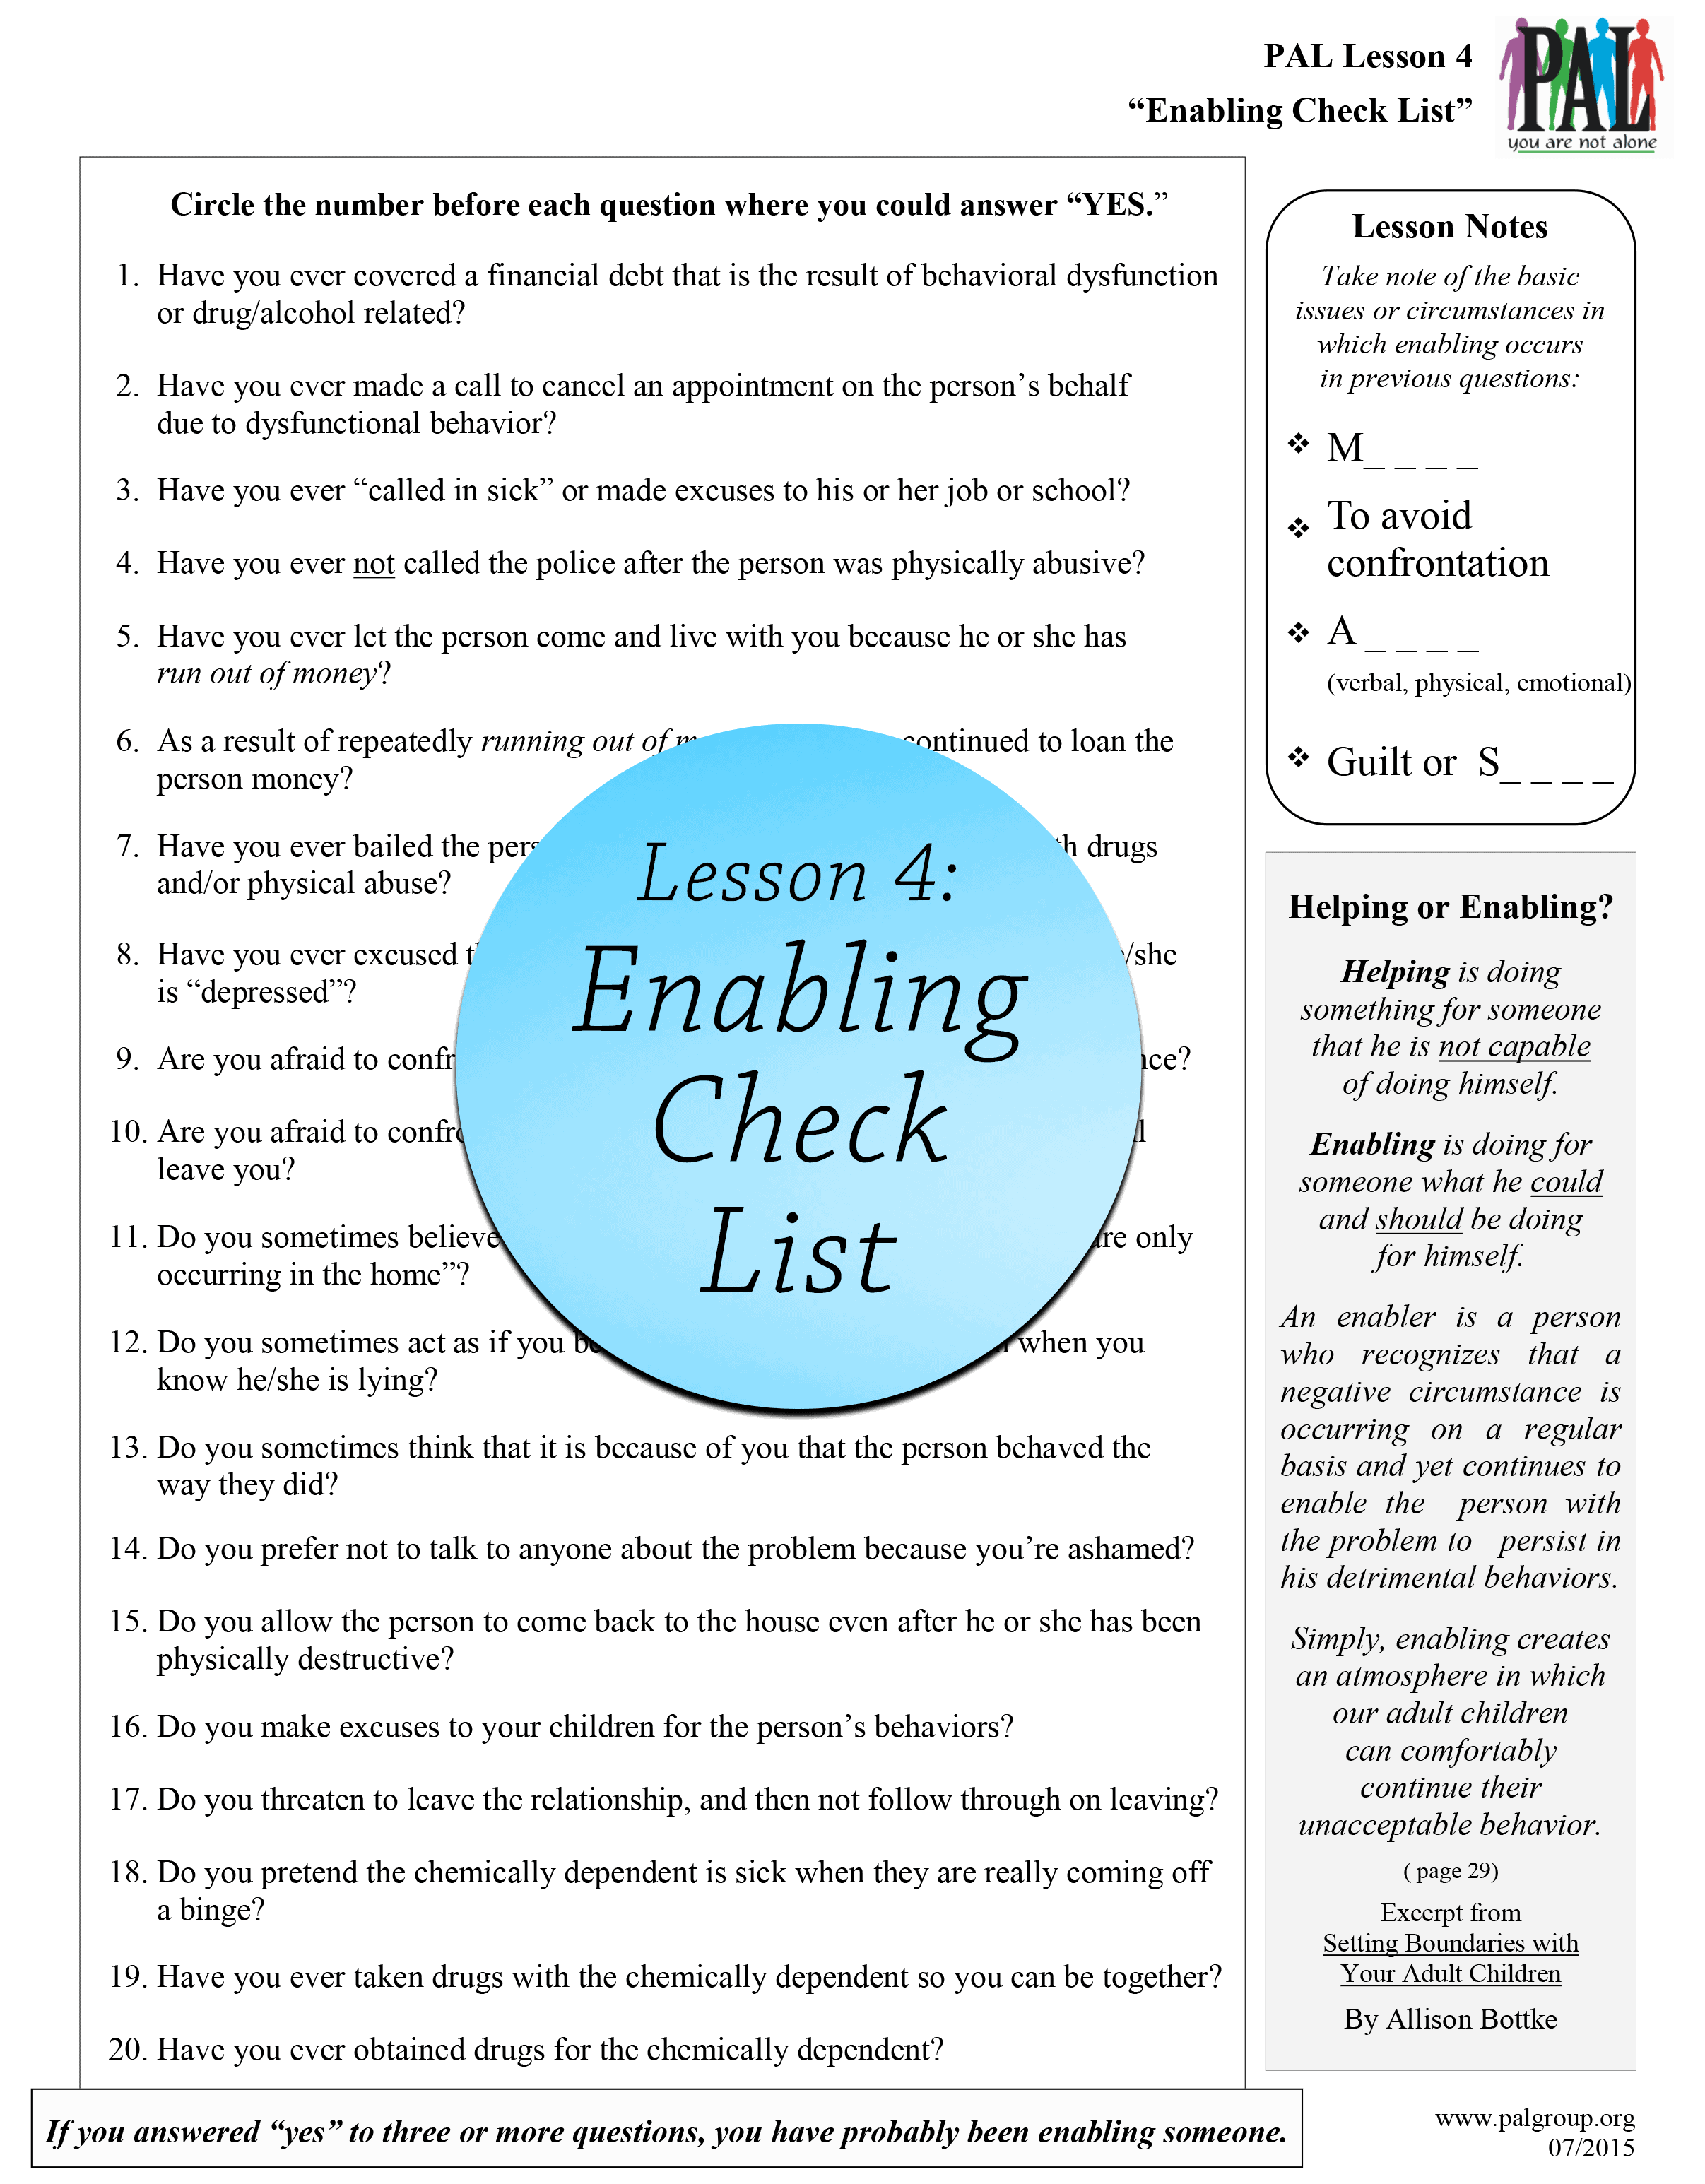 Lesson 4: Enabling Check List